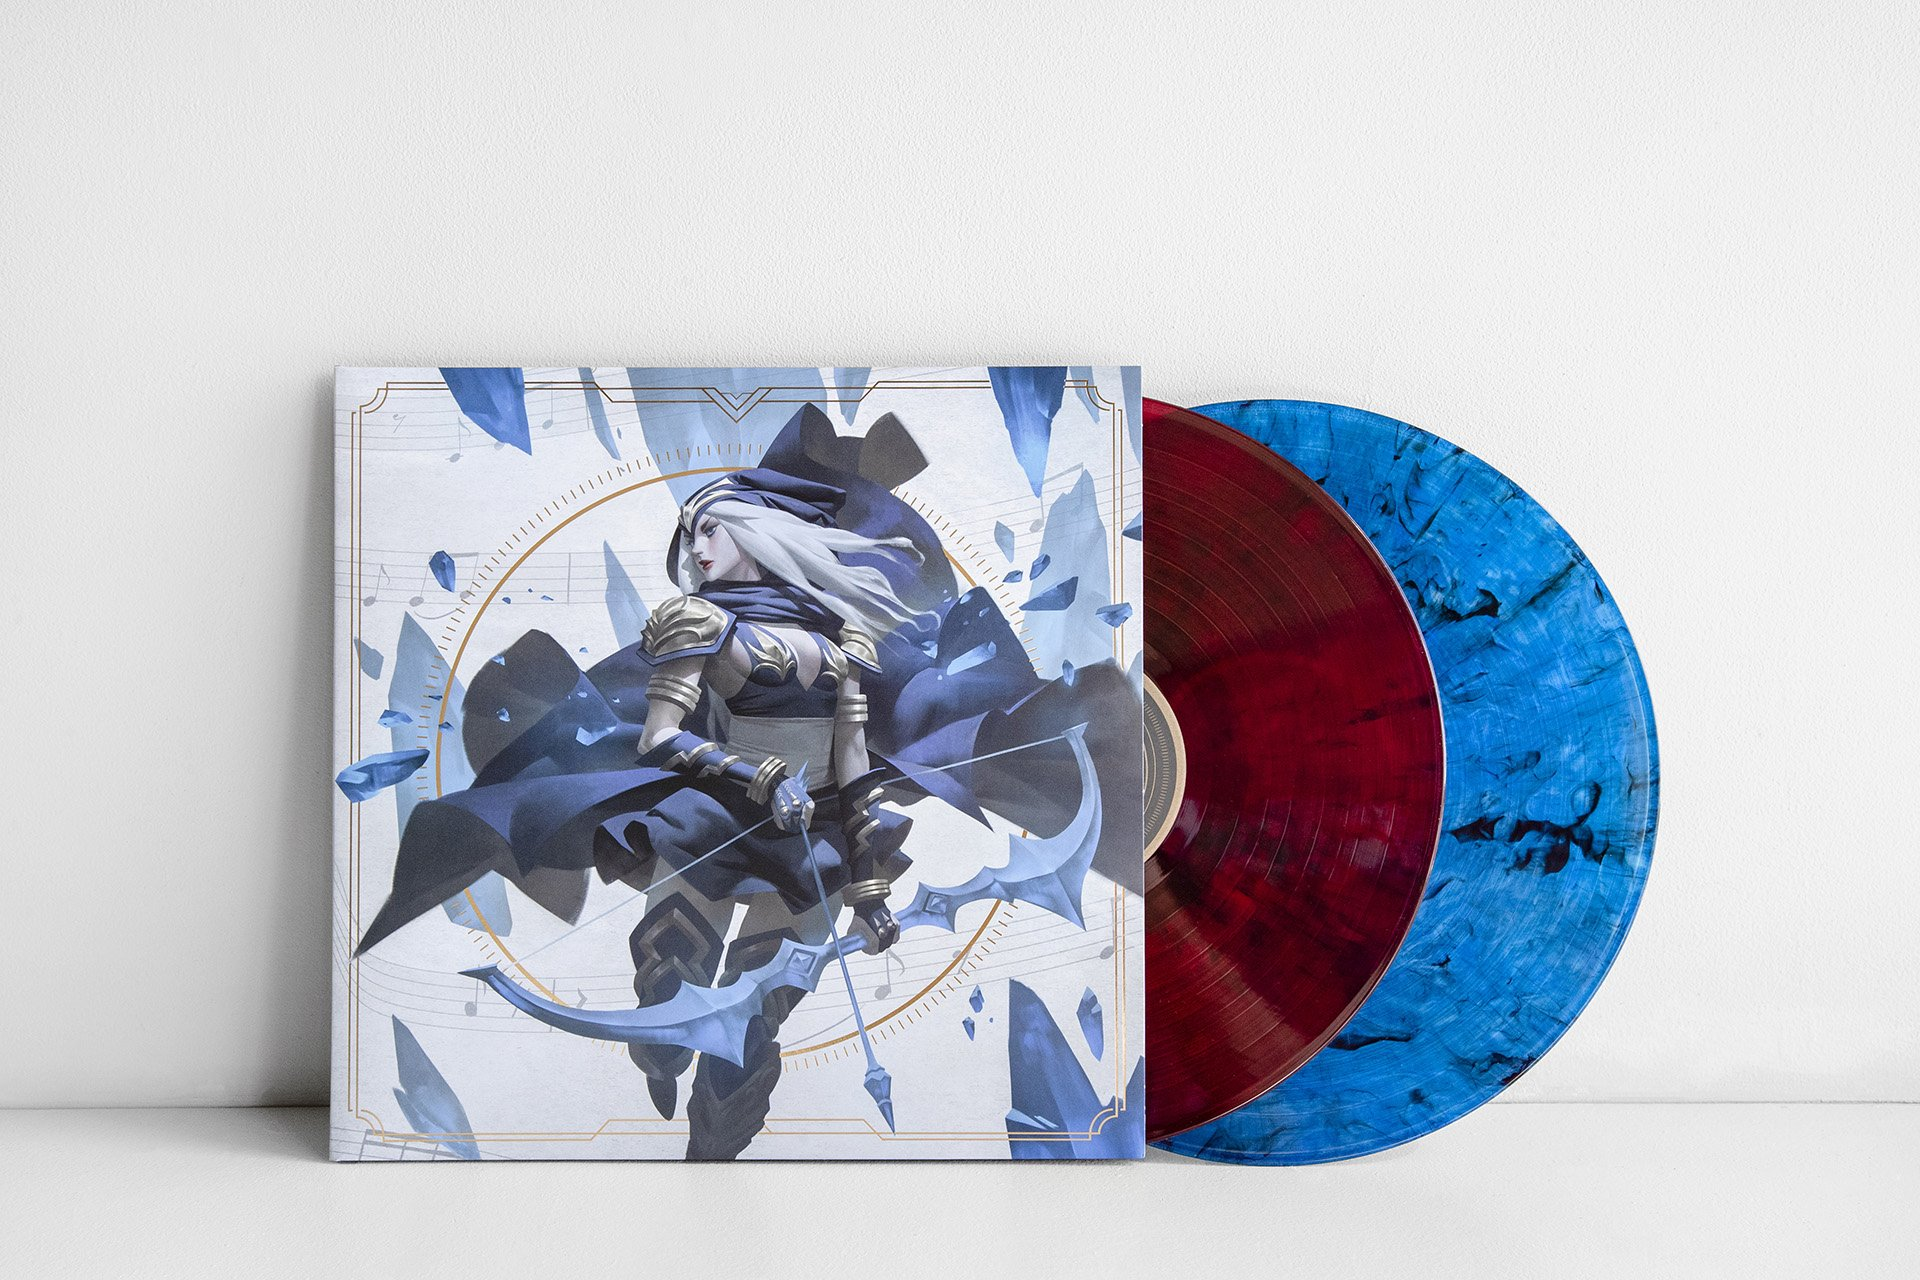 League of Legends celebrates 10 years with Limited Edition vinyl soundtrack